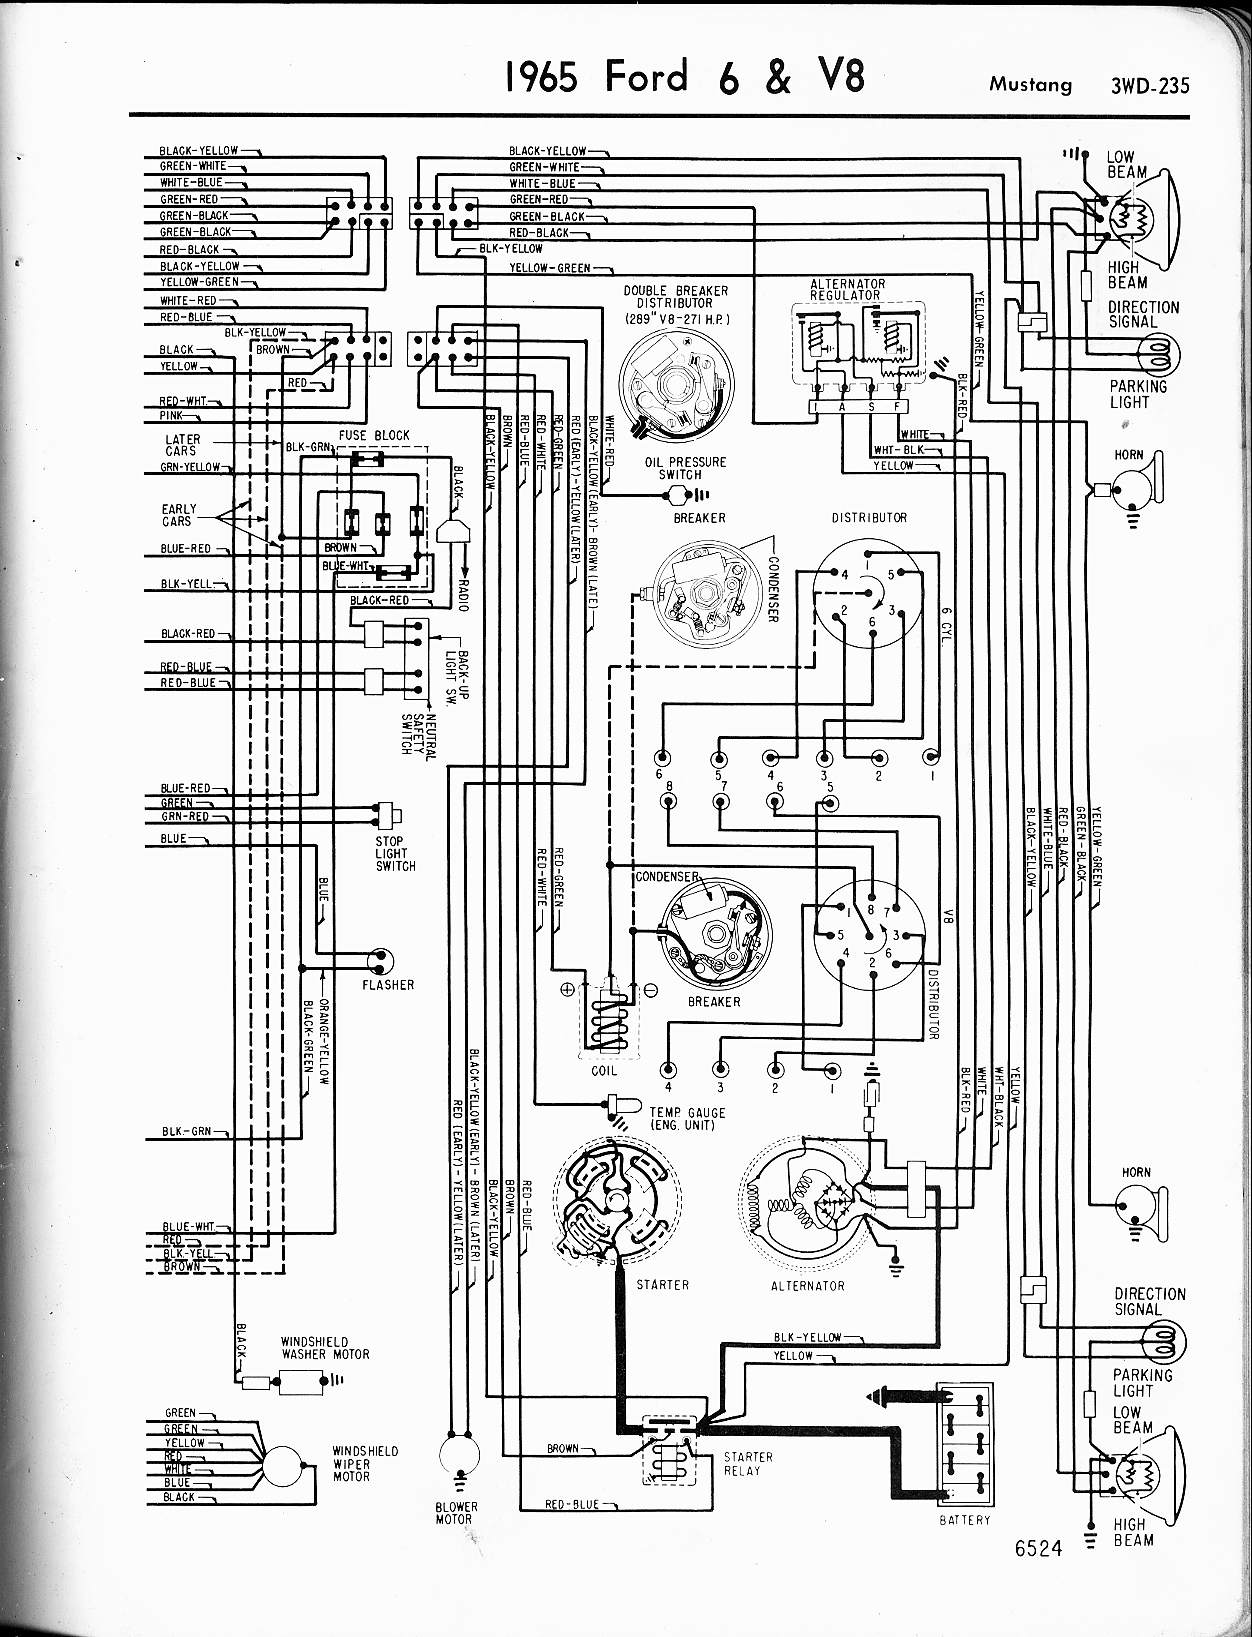 MWire5765 235 1970 mustang wiring diagram 1970 mustang ignition switch wiring 1969 ford mustang fuse box at bayanpartner.co